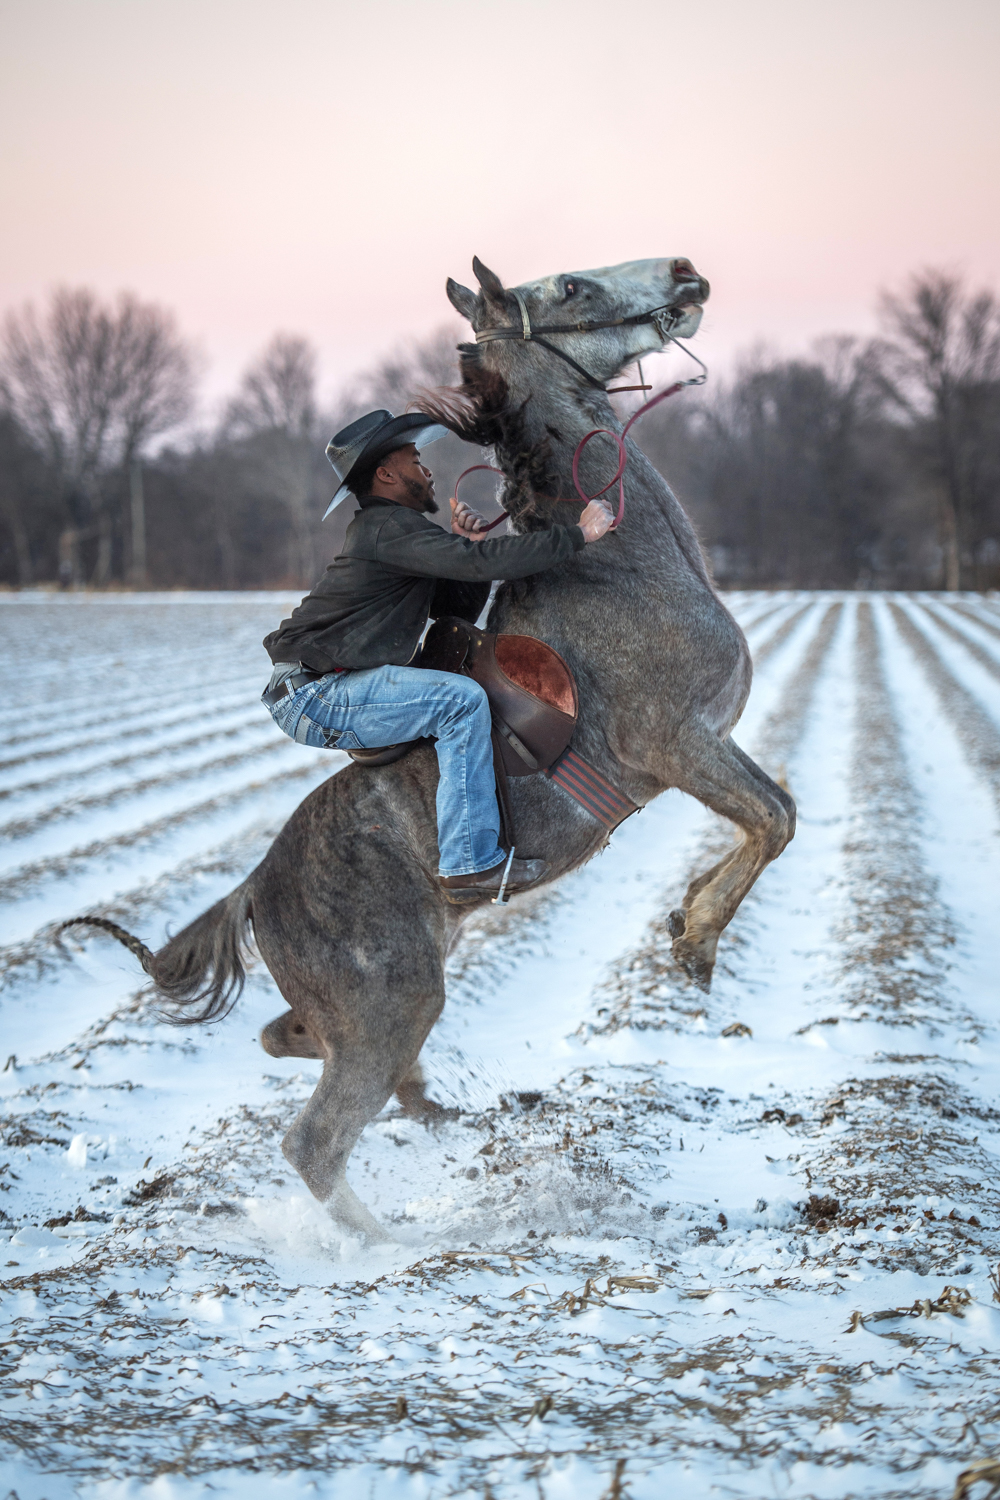 Gee rears his horse following a rare snowfall in flatlands of Bolivar County, Mississippi.